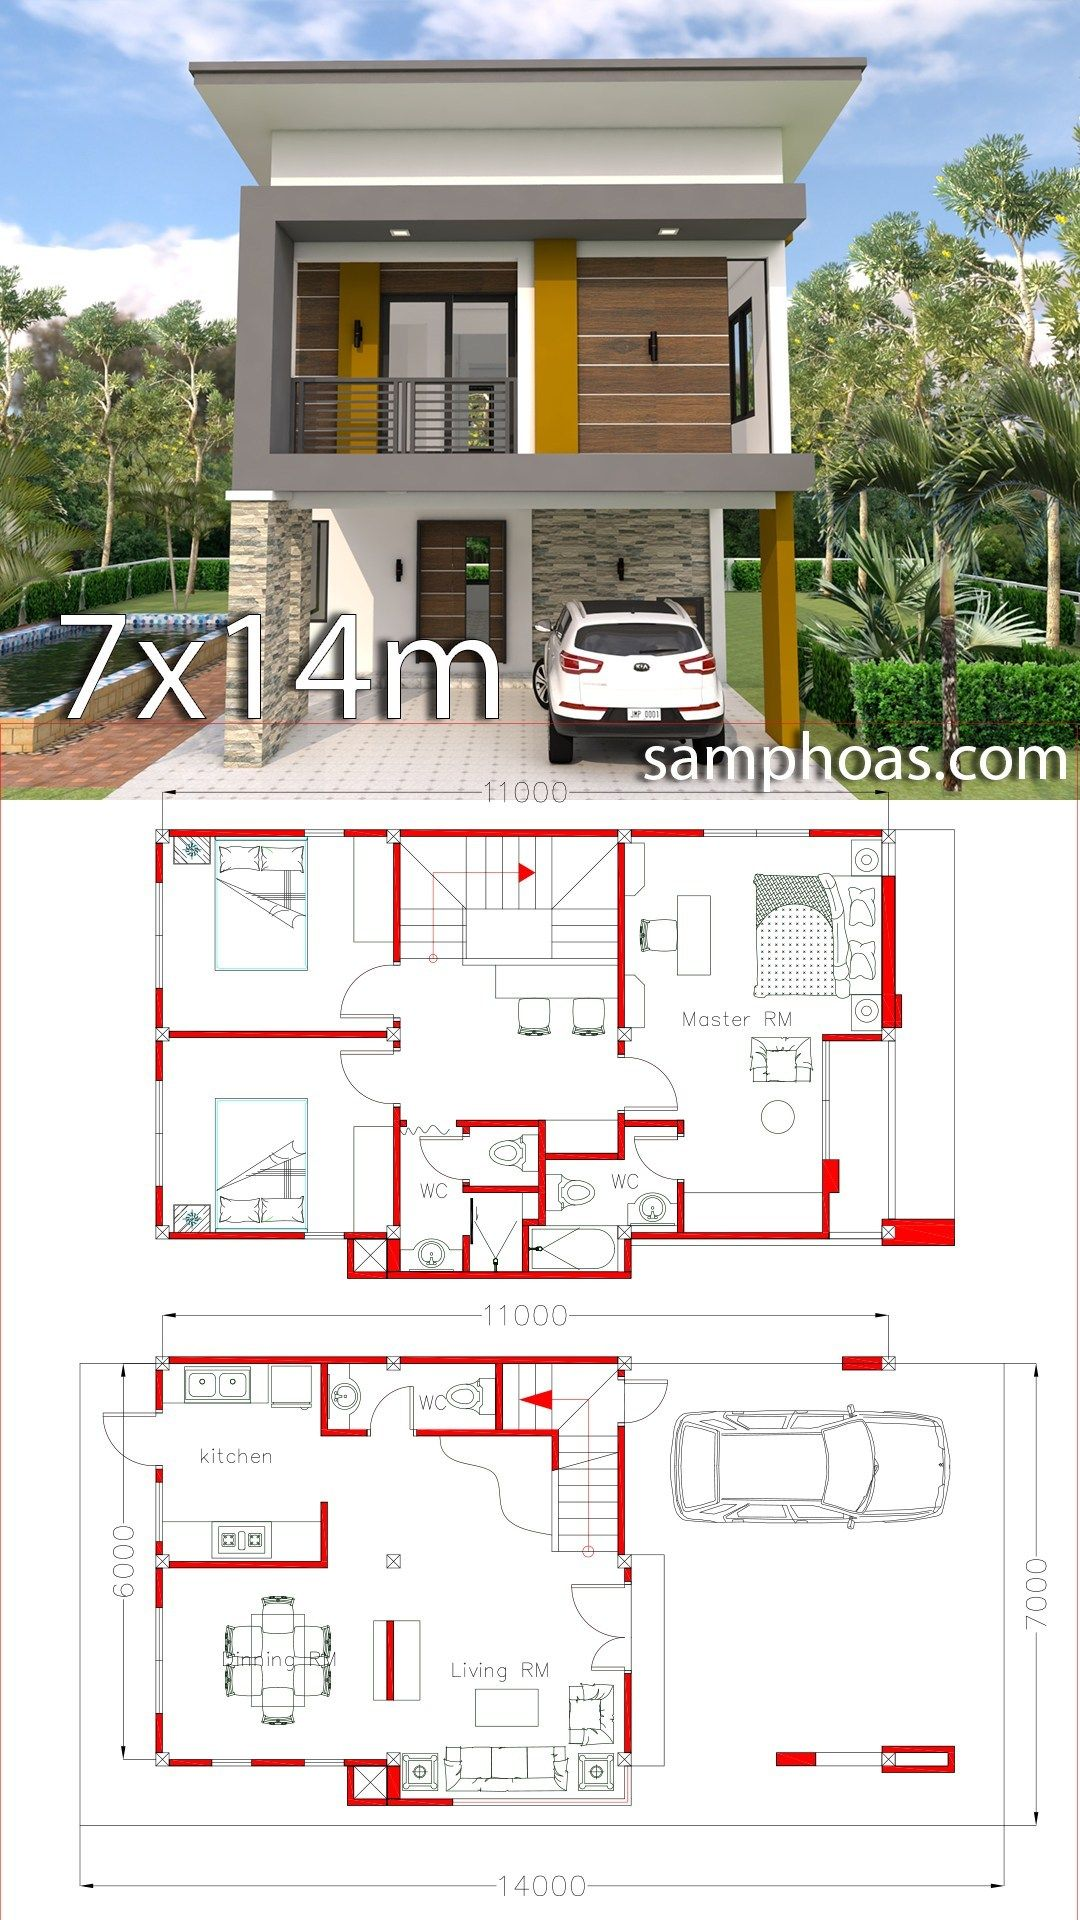 Small Home Design Plan 6x11m With 3 Bedrooms Samphoas Plansearch Tiny Modern House Plans Small House Design Plans Small House Design